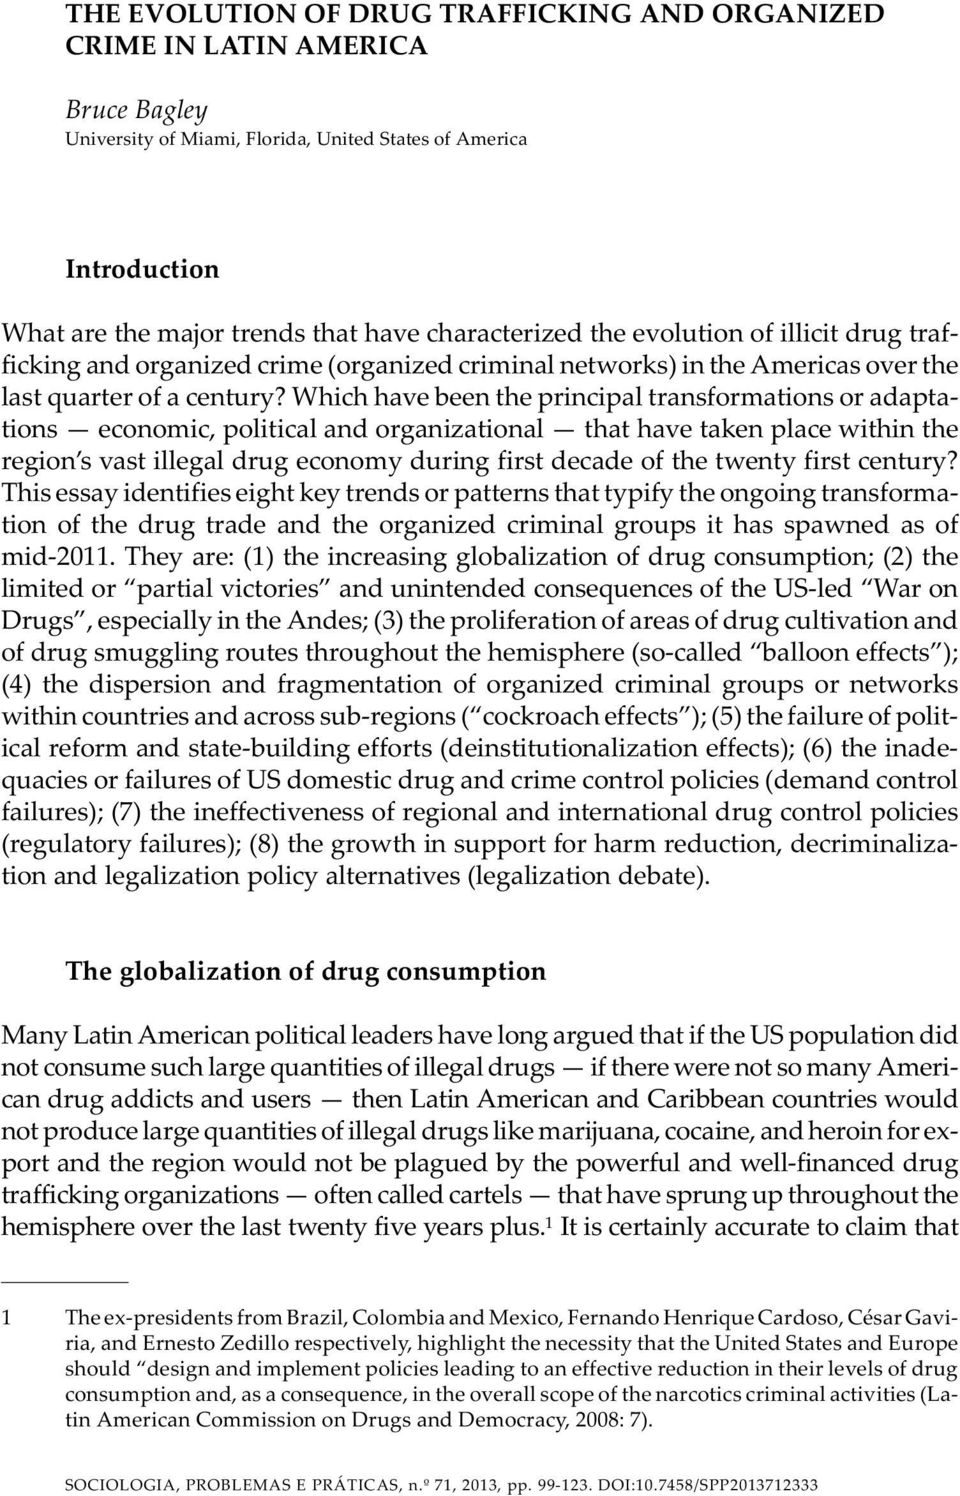 My First Day Of High School Essay Which Have Been The Principal Transformations Or Adaptations Economic  Political And Organizational That Have Taken Theme For English B Essay also English As A Global Language Essay The Evolution Of Drug Trafficking And Organized Crime In Latin  Argumentative Essay Thesis Example